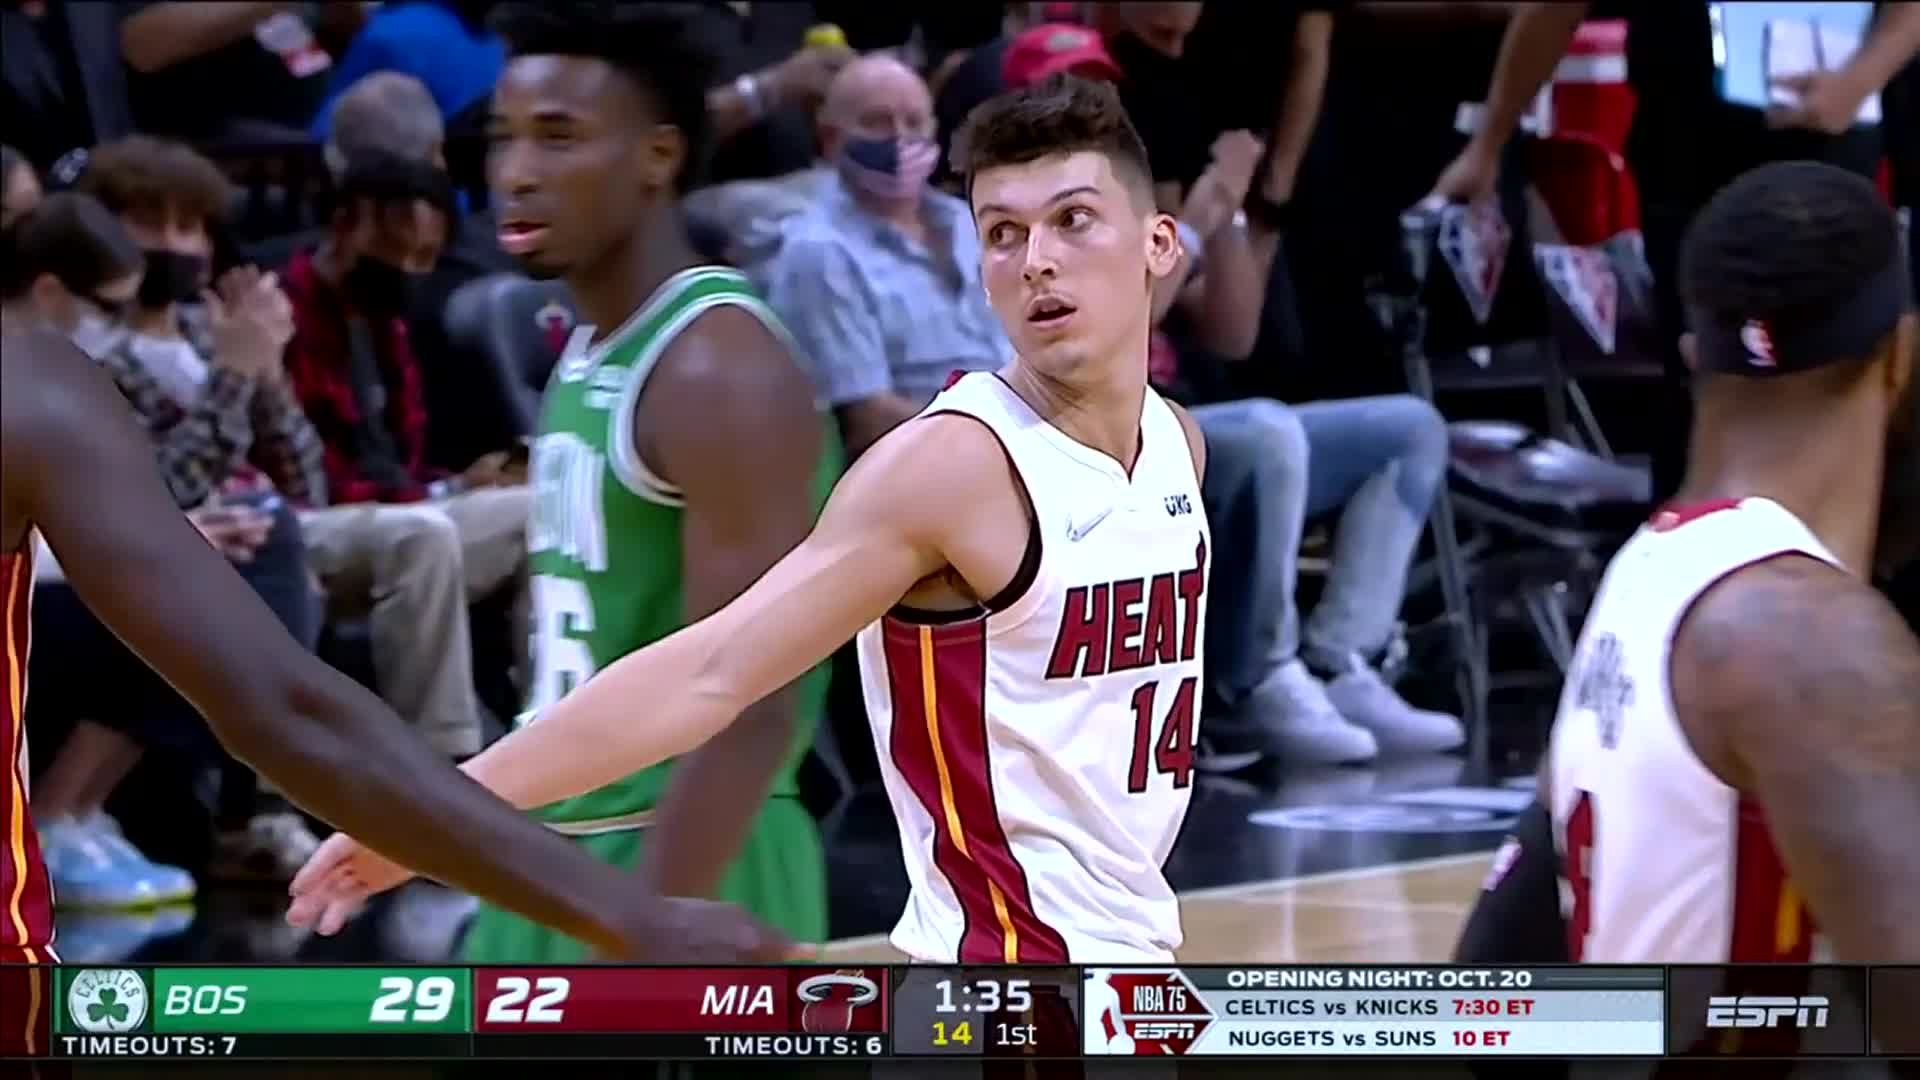 Tyler Herro with 26pts, 6rebs, 4asts